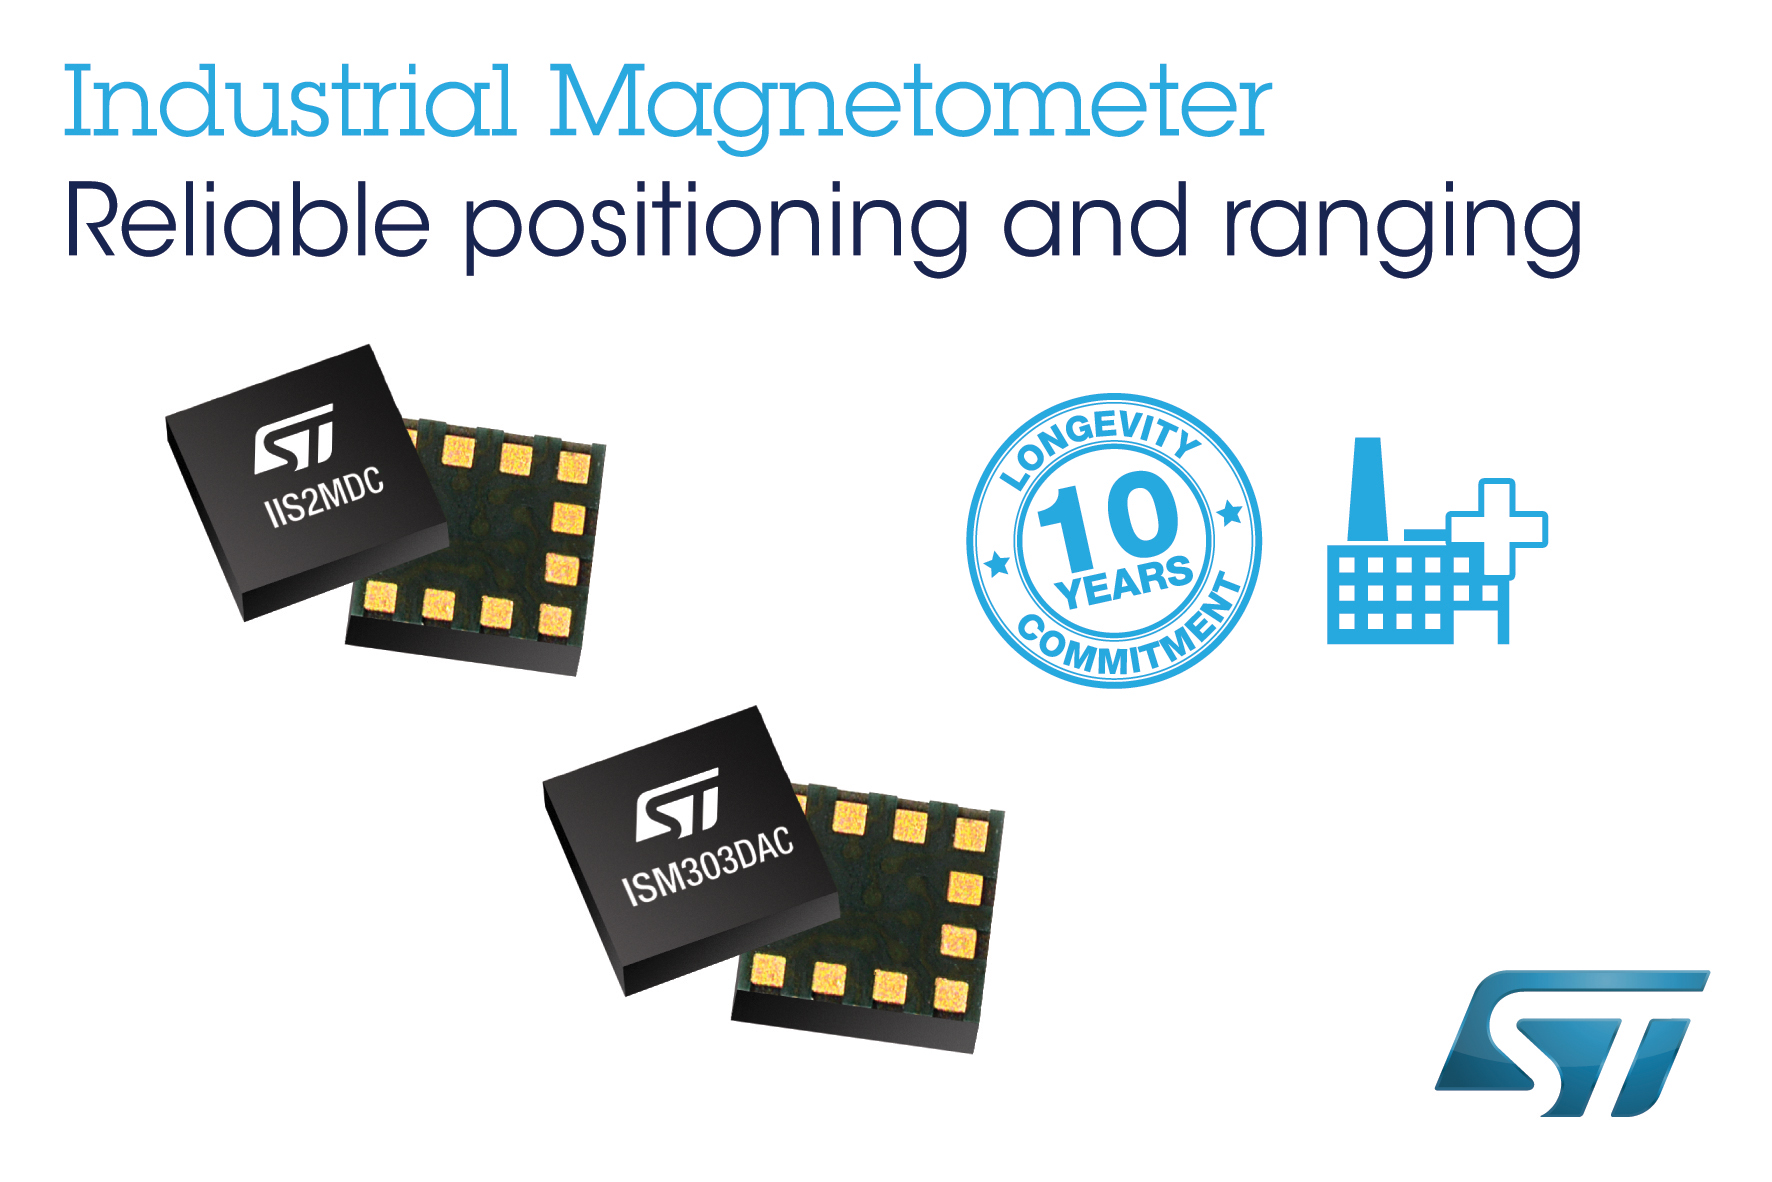 Industrial Magnetometer and eCompass for Precision Motion Sensing